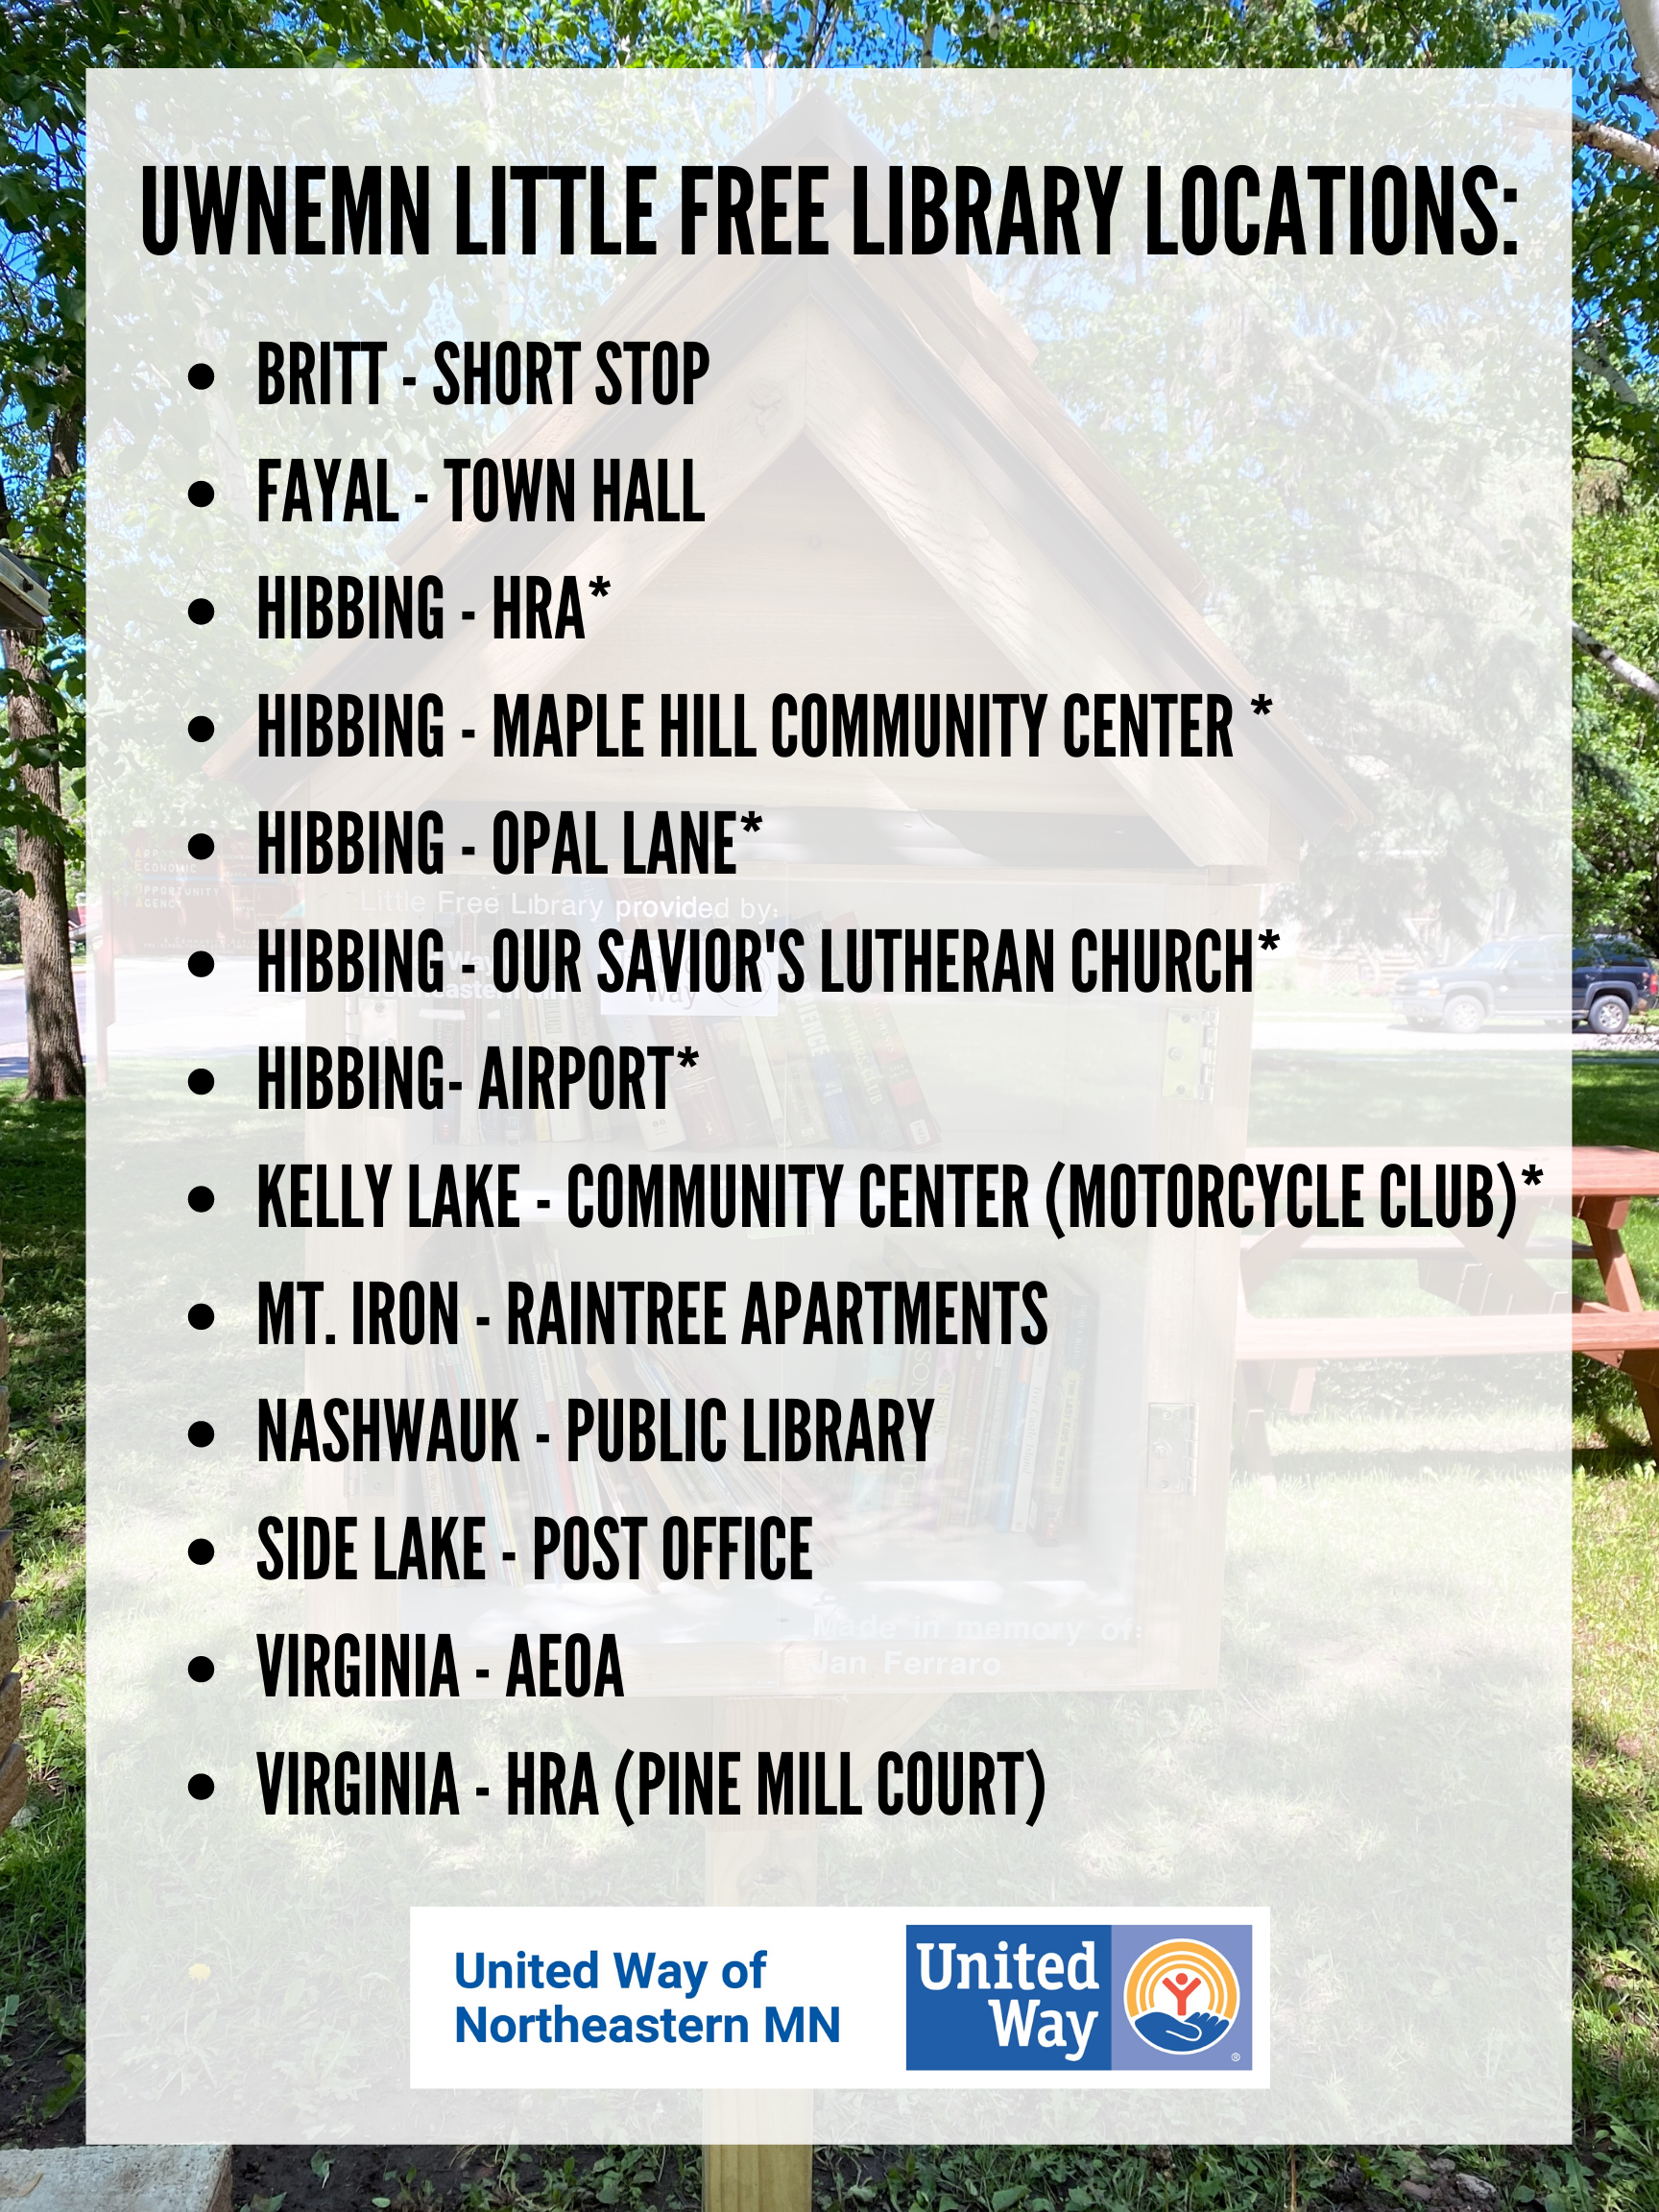 Virginia AEOA, Virginia Pine Mill Court, Mt. Iron Raintree, Nahswauk High School, Side Lake Post Office, Britt Short Stop, Fayal Town Hall, Hibbing HRA*, Maple Hill Community Center*, Kelly Lake Community Center*, Opal Lane*, Our Savior's Lutheran Church Hibbing*, and Hibbing Airport*